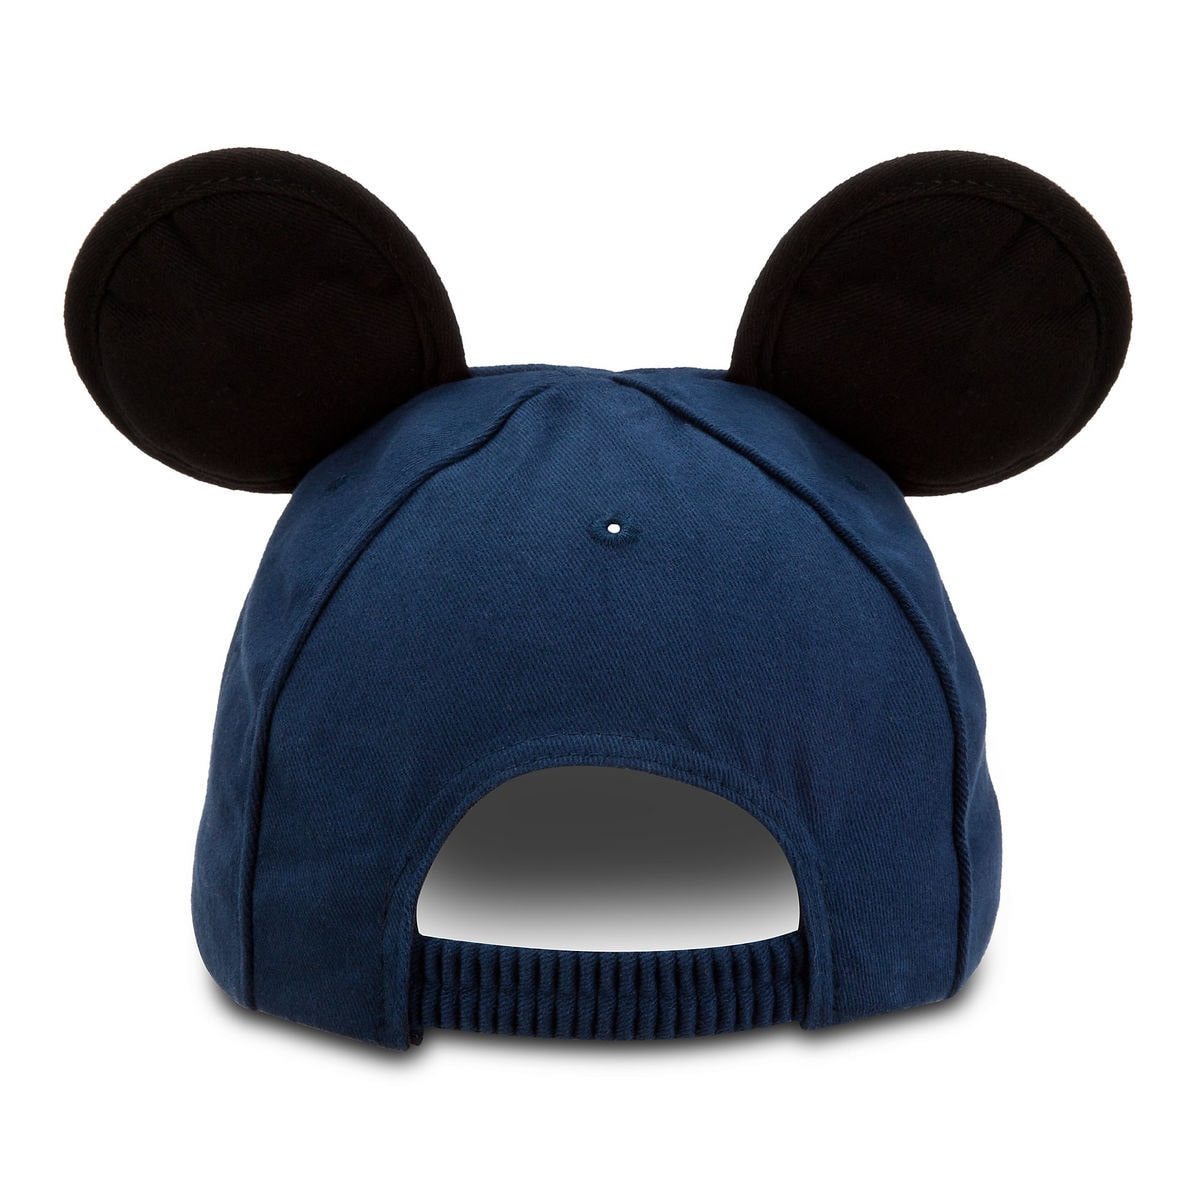 feb8b250b7d Product Image of Mickey Mouse Baseball Cap for Toddlers with Sunglasses   3